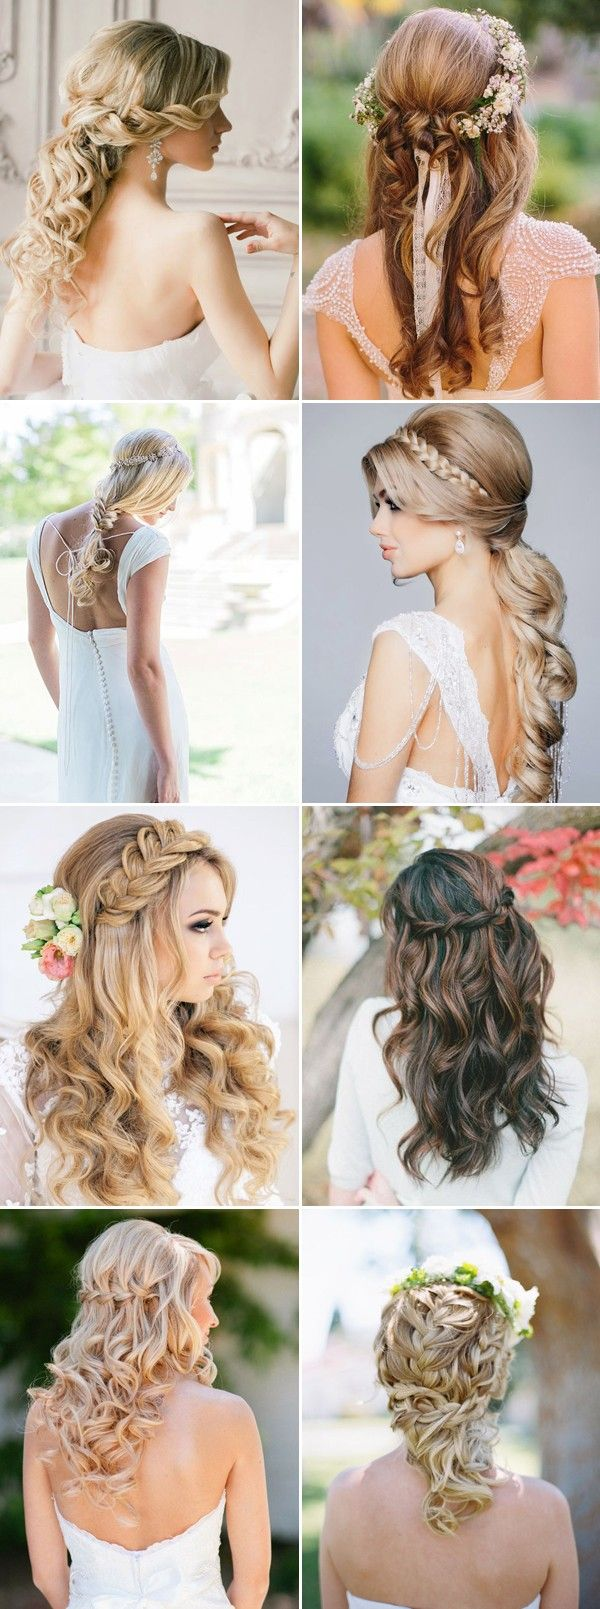 91 best Wedding Hair images on Pinterest | Wedding hair styles, Hair ...